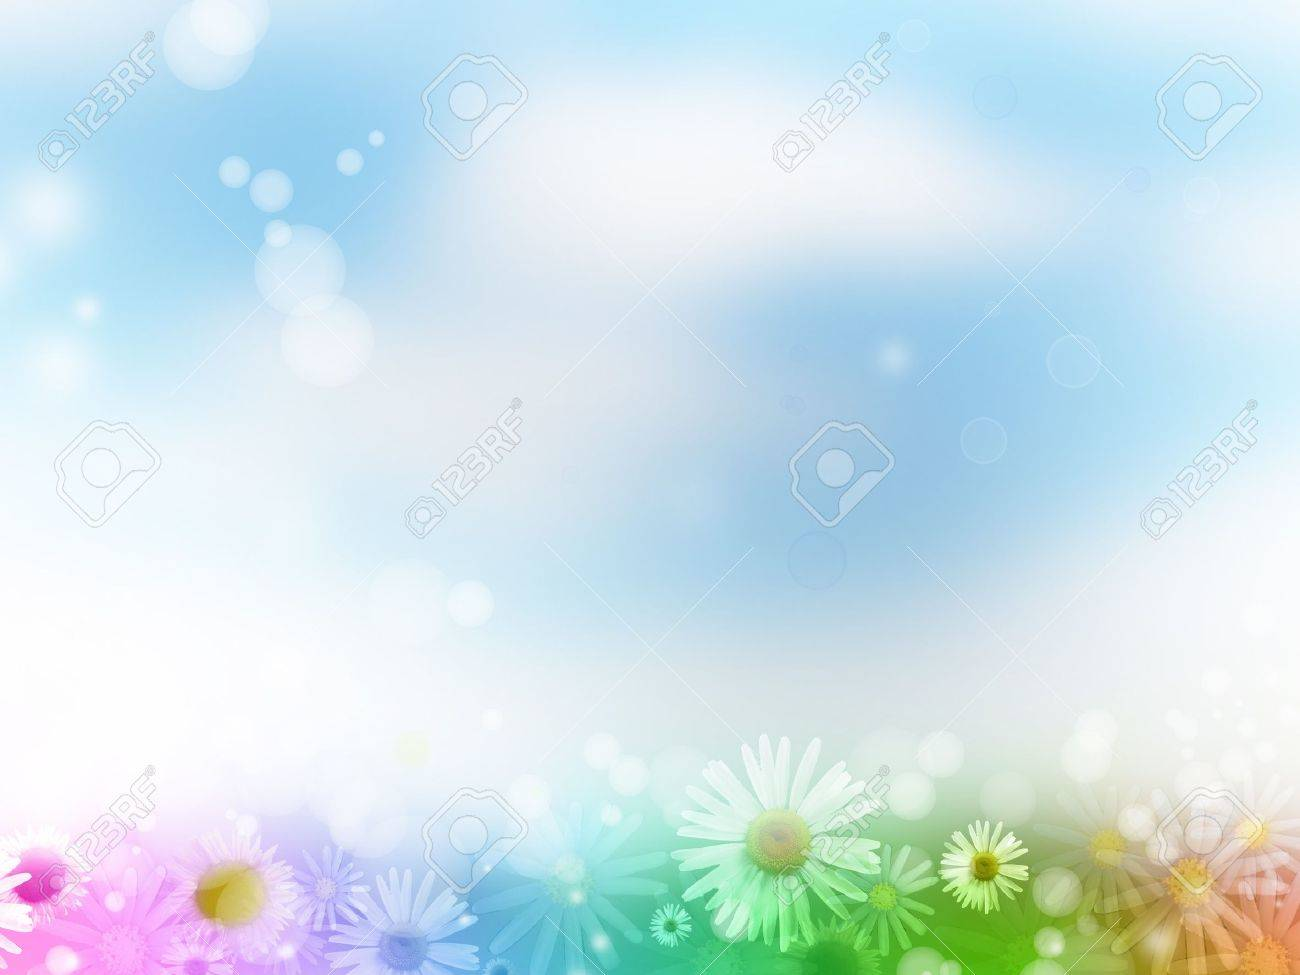 Flowers on blue and white background stock photo picture and flowers on blue and white background stock photo 11531729 dhlflorist Image collections